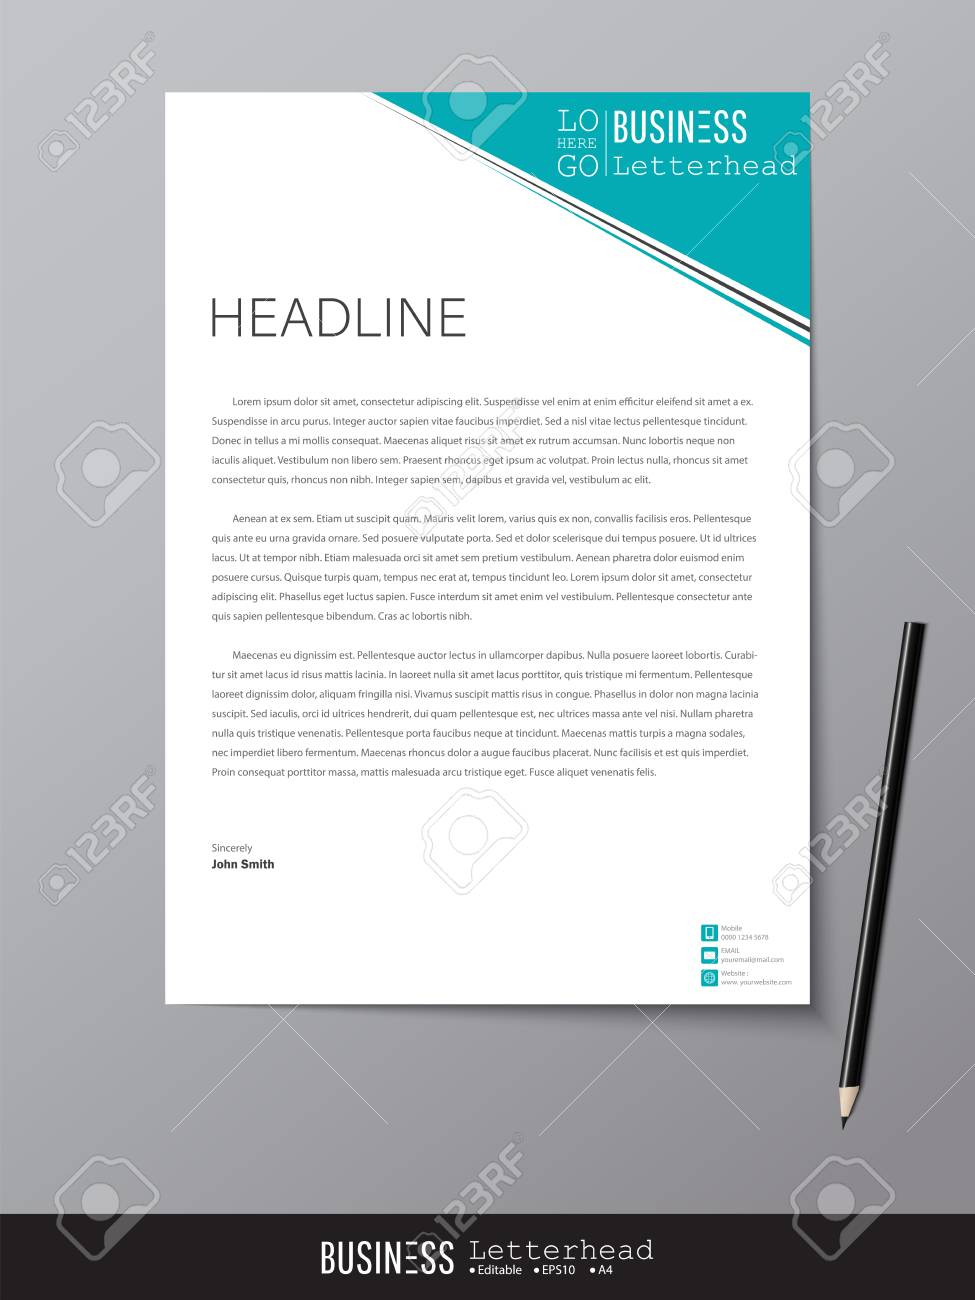 Letterhead design template and mockup minimalist style vector letterhead design template and mockup minimalist style vector design for business or letter layout wajeb Choice Image